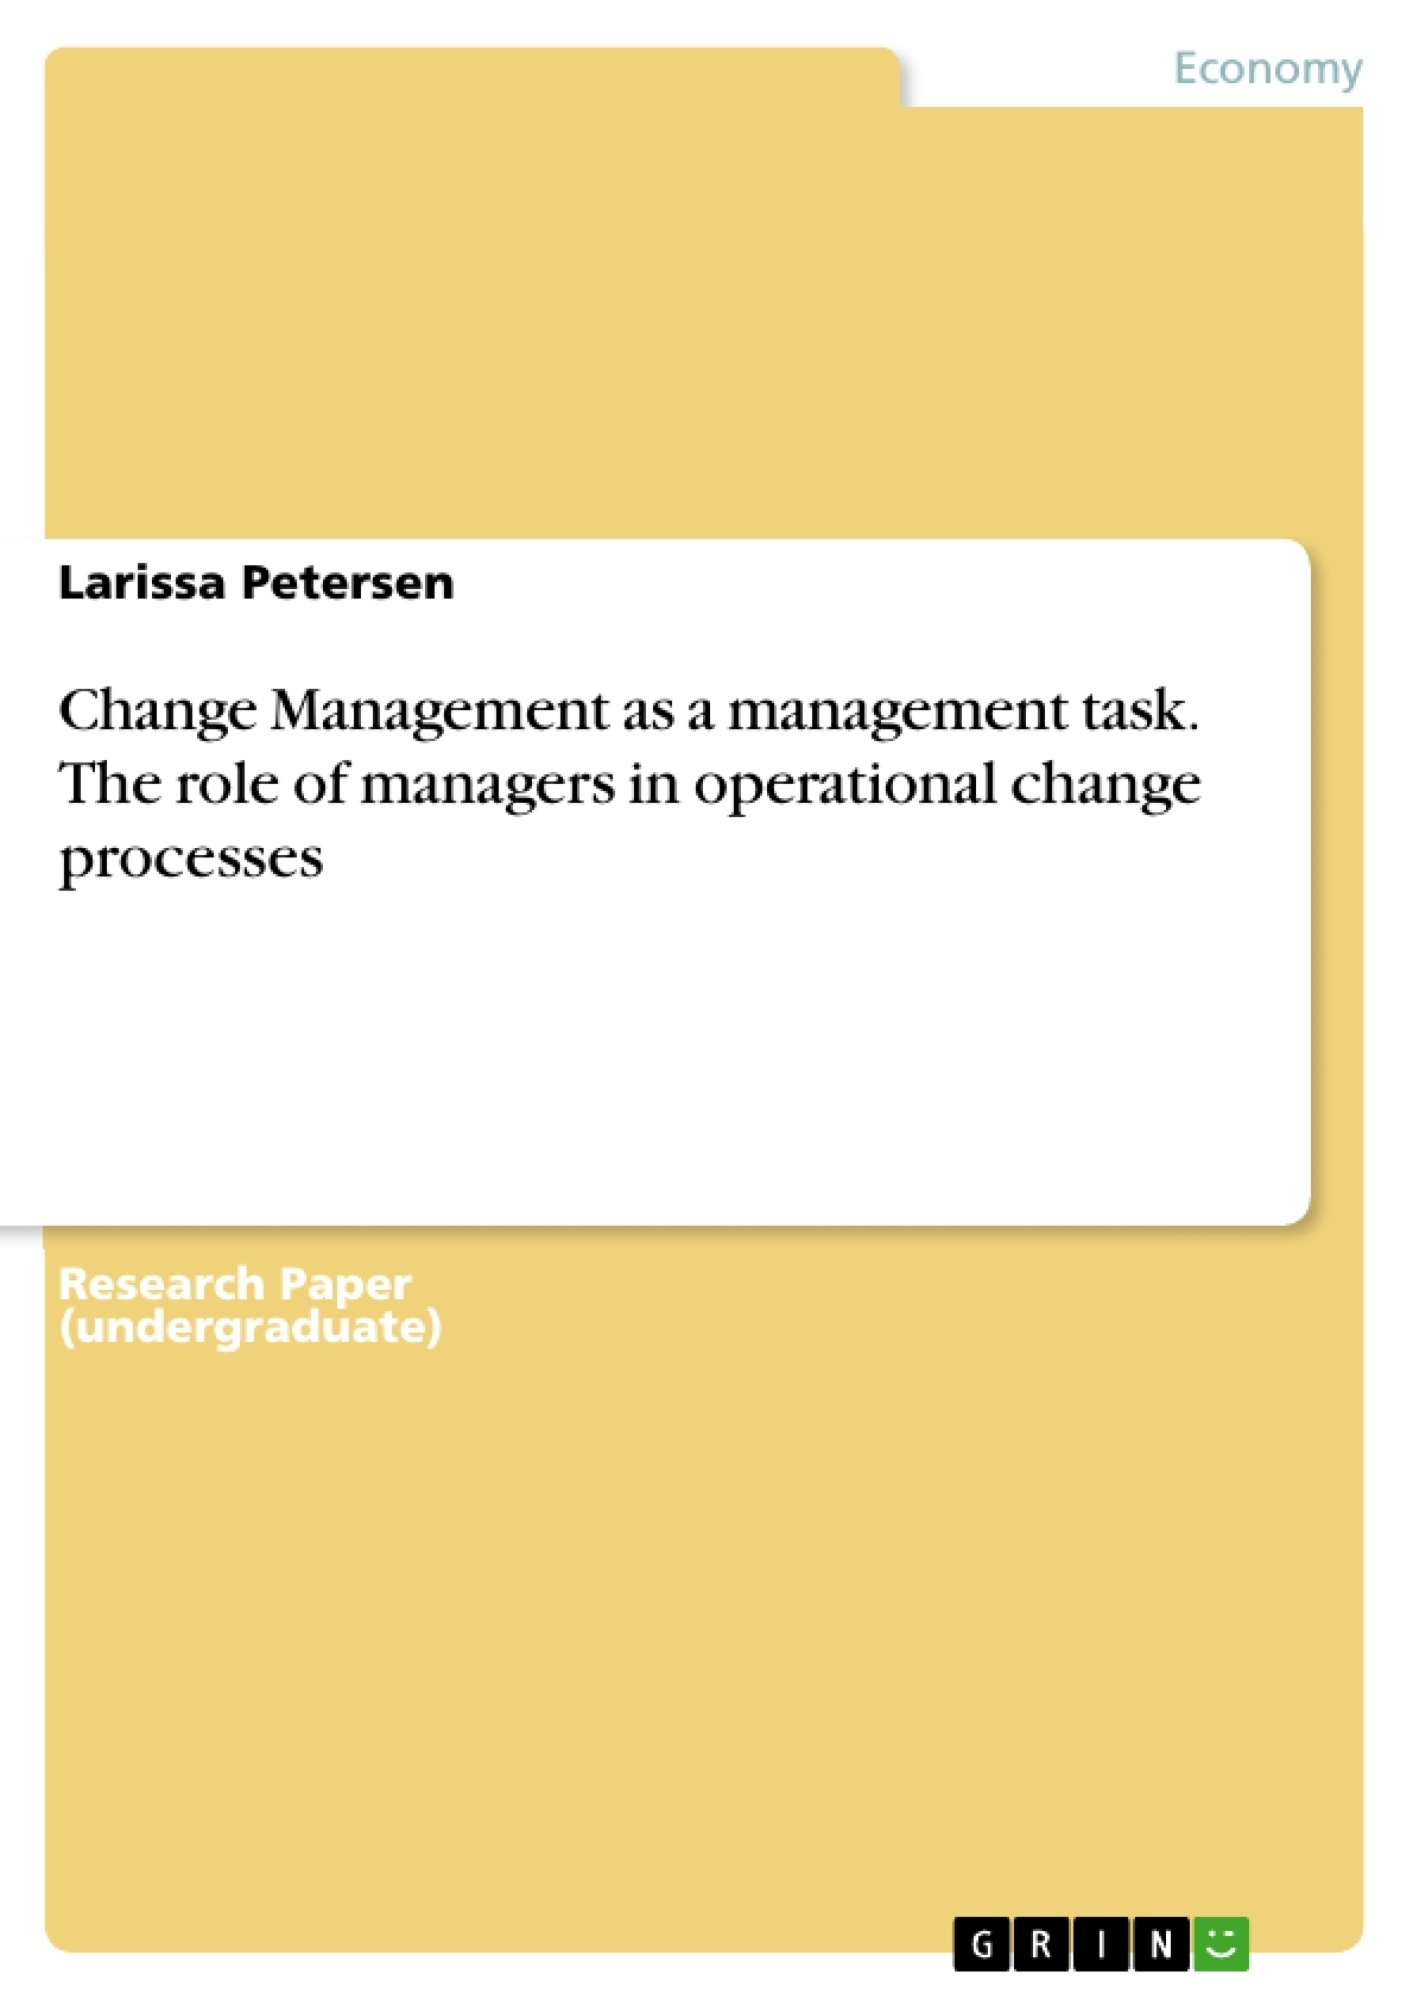 Title: Change Management as a management task. The role of managers in operational change processes